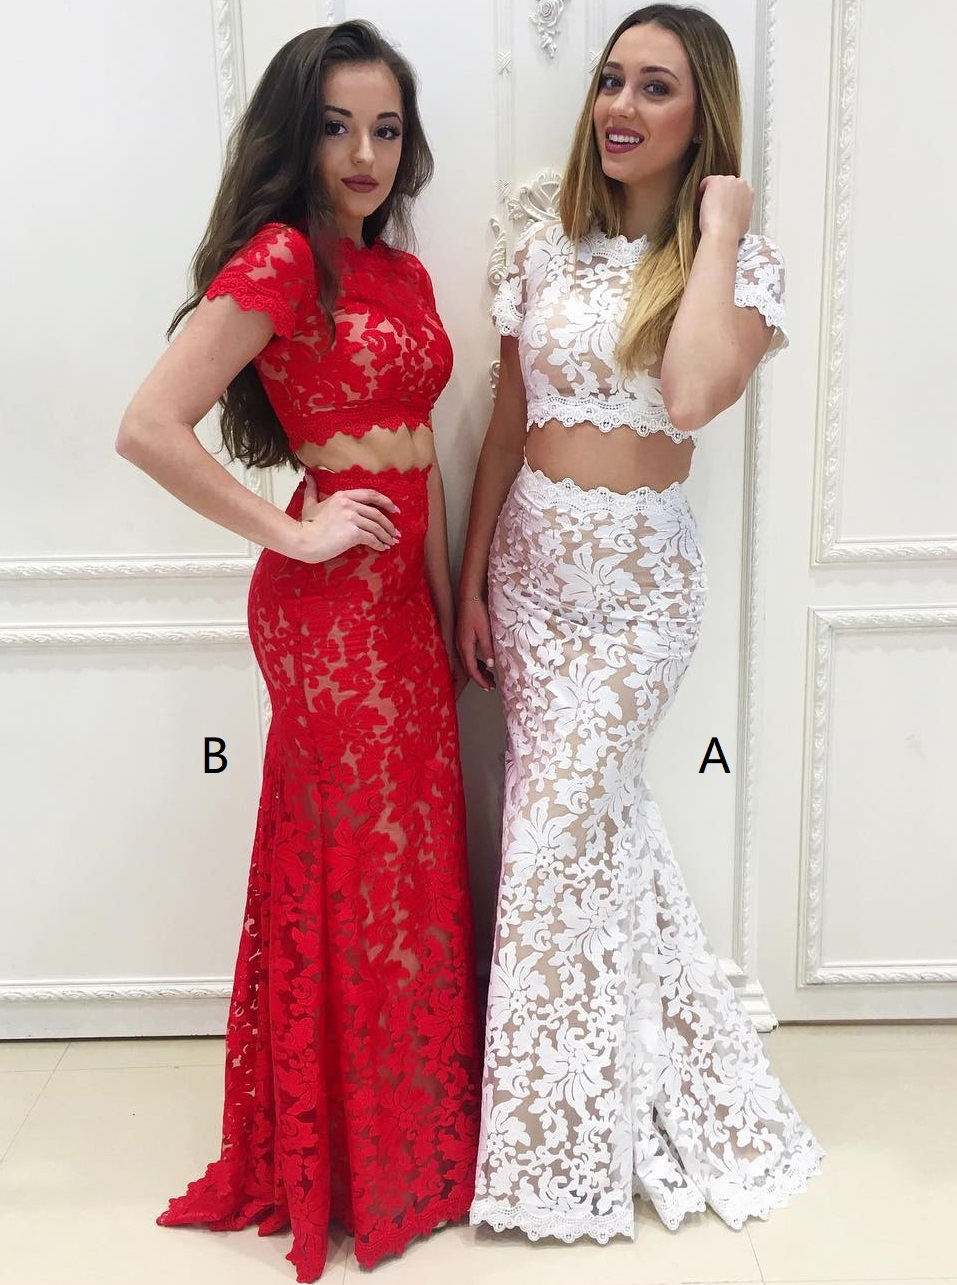 Simple-dress / Two Piece Mermaid Round Neck Short Sleeves White Lace Prom Dress